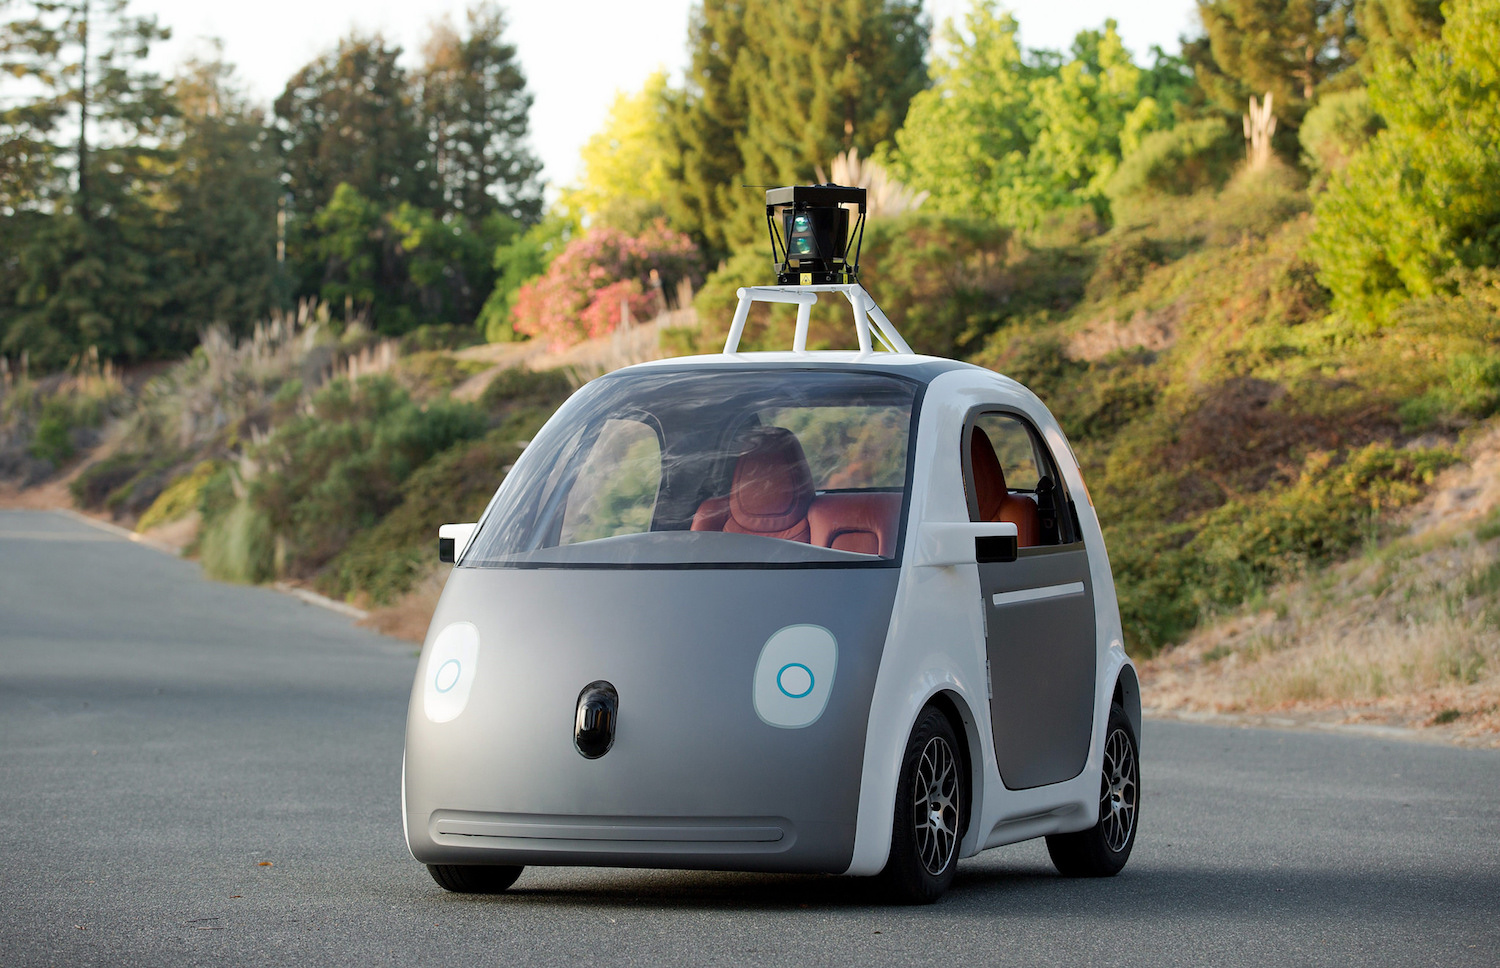 Self-Driving Cars: Science Fiction No More